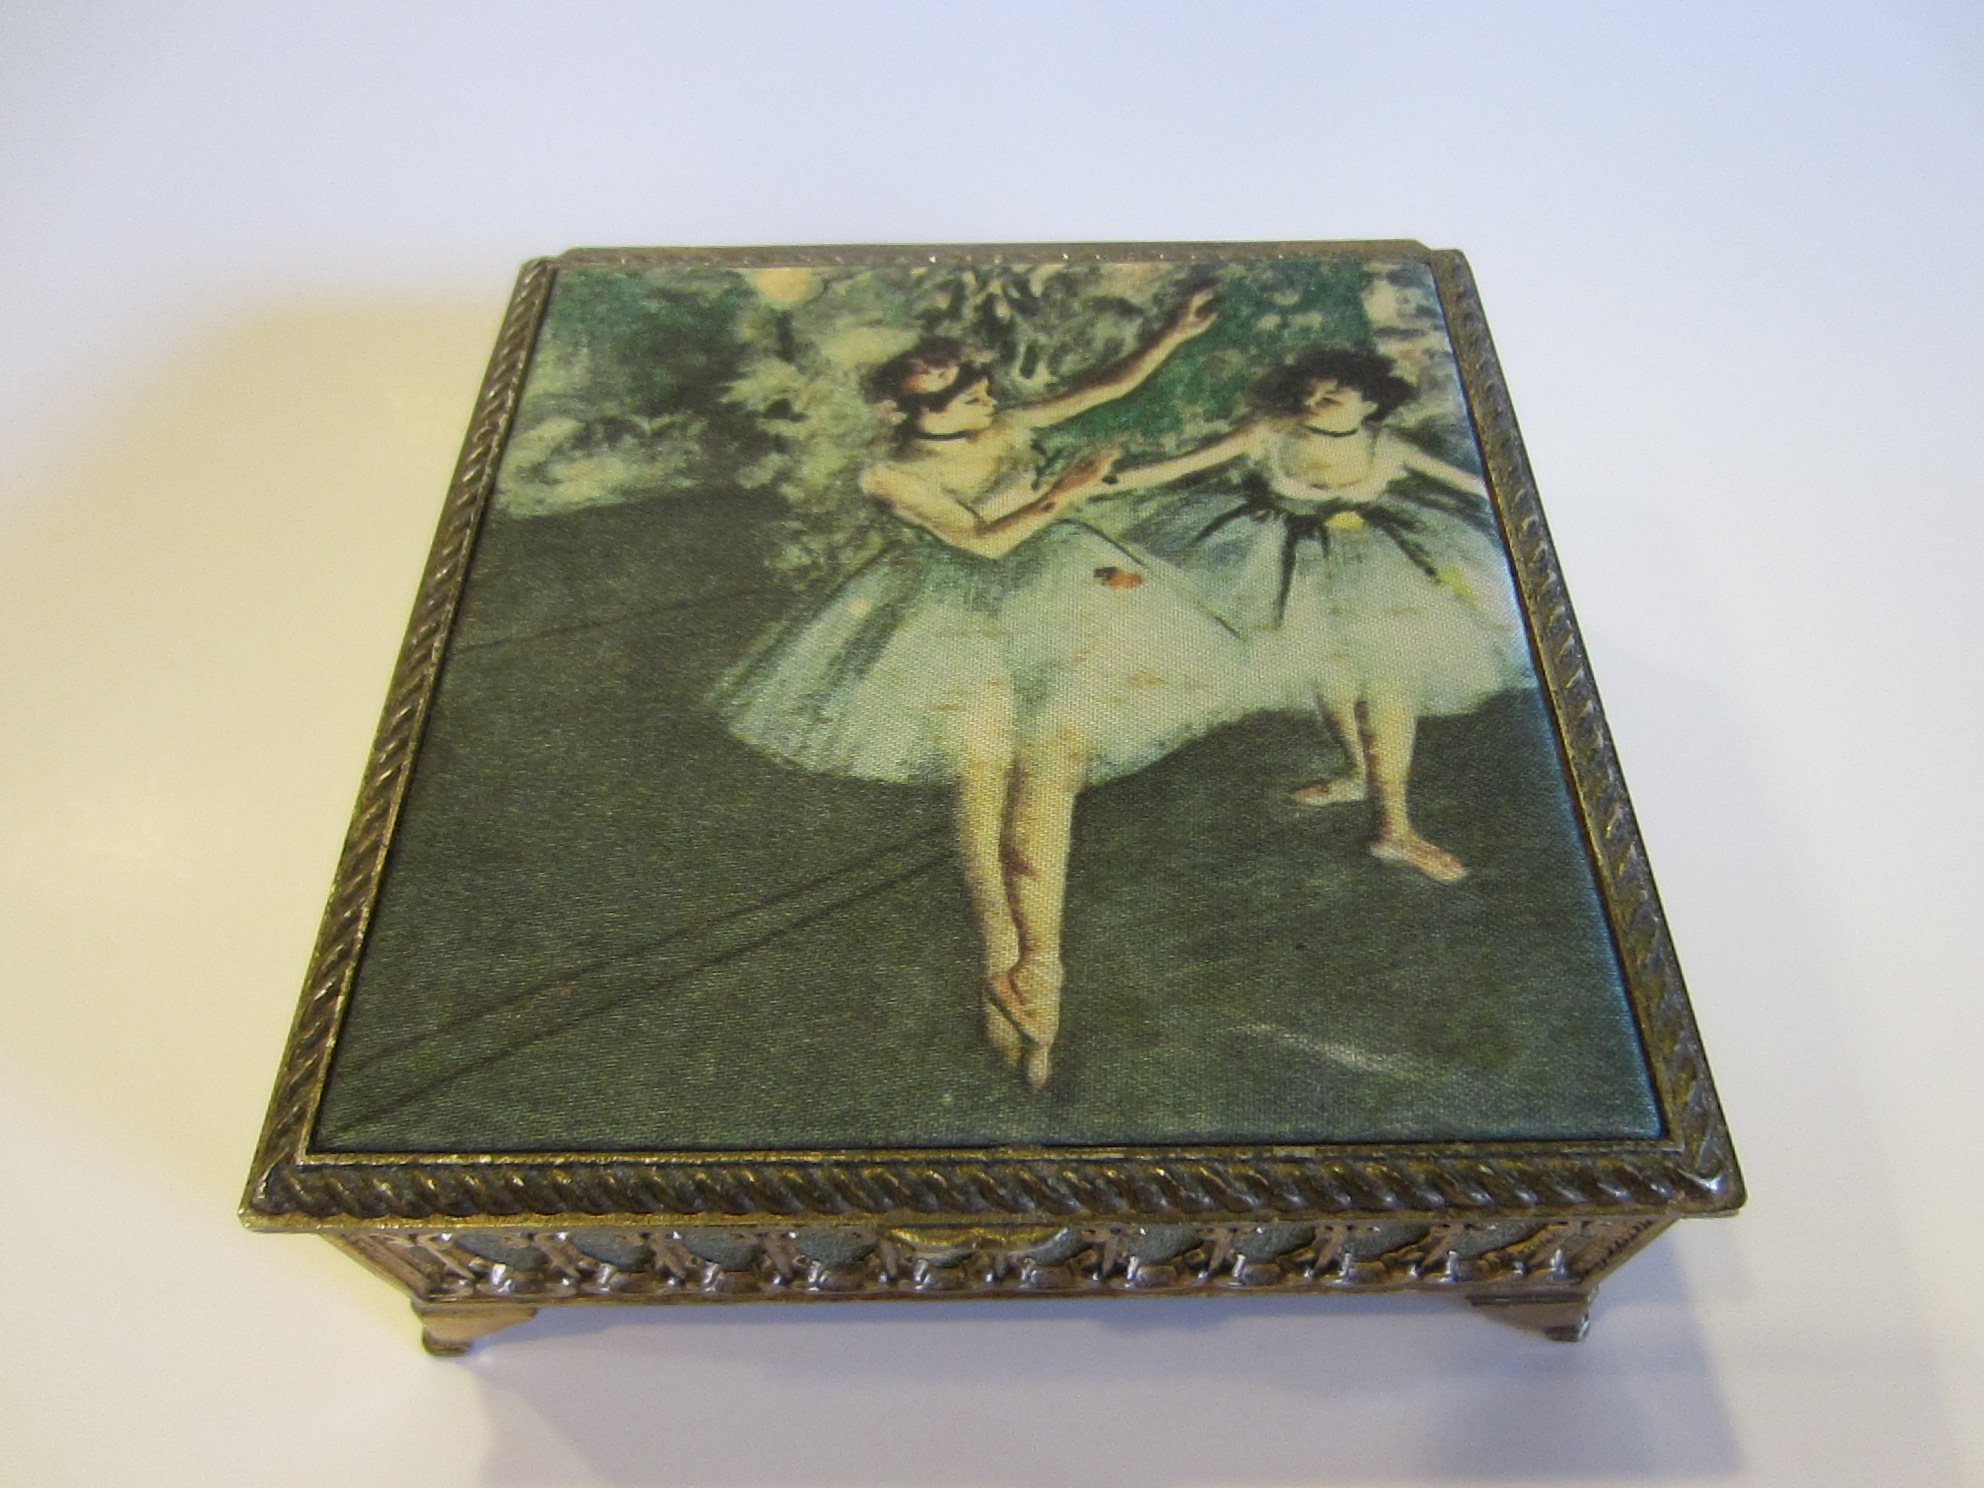 Opinion Vintage antique metal jewelry boxes you thanks